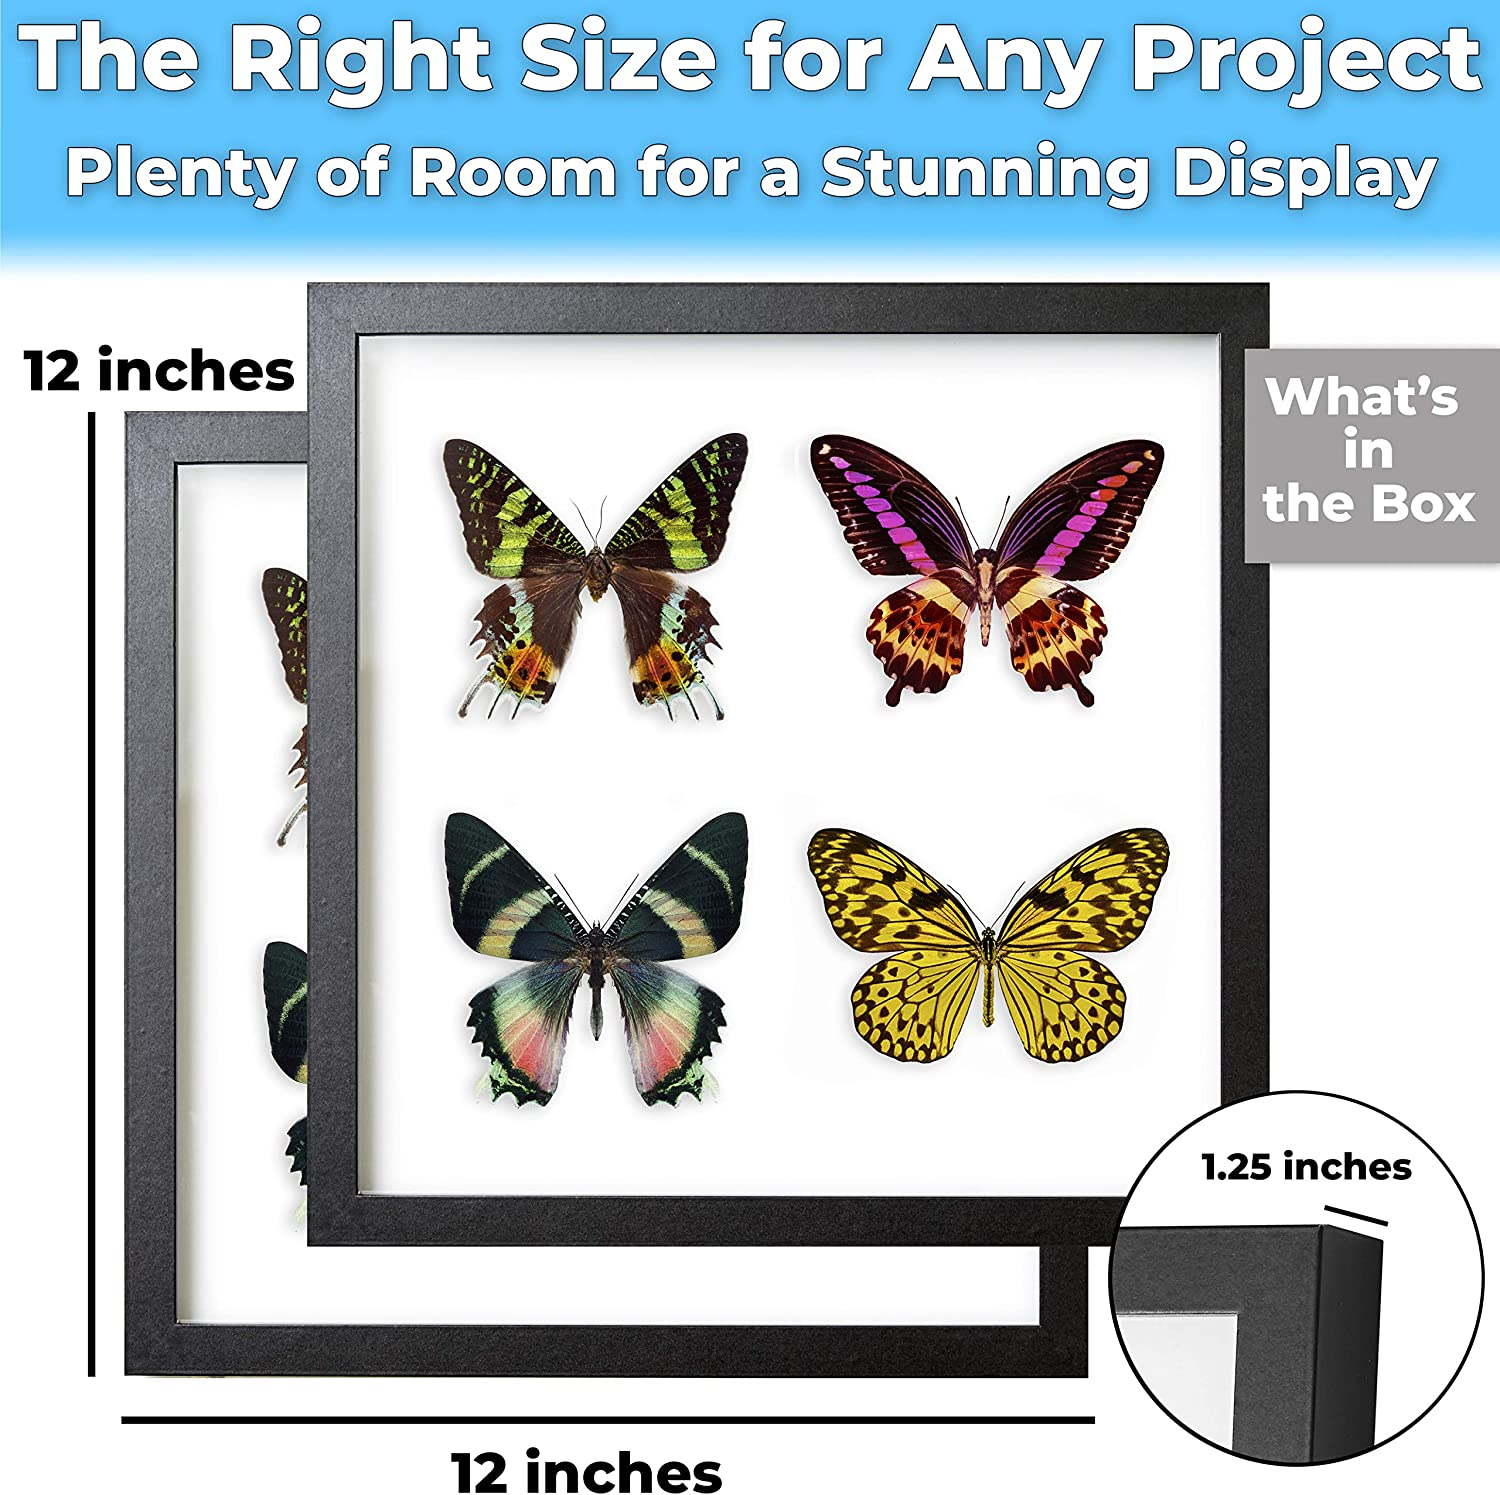 Wedding Bouquets Super-Sturdy Awards Medals Tickets Best Shadowbox to Showcase Photos Real Wood 12x12 Shadow Box Frame 2pk CDs Seashells and Insects Hardwood Display with Real Glass